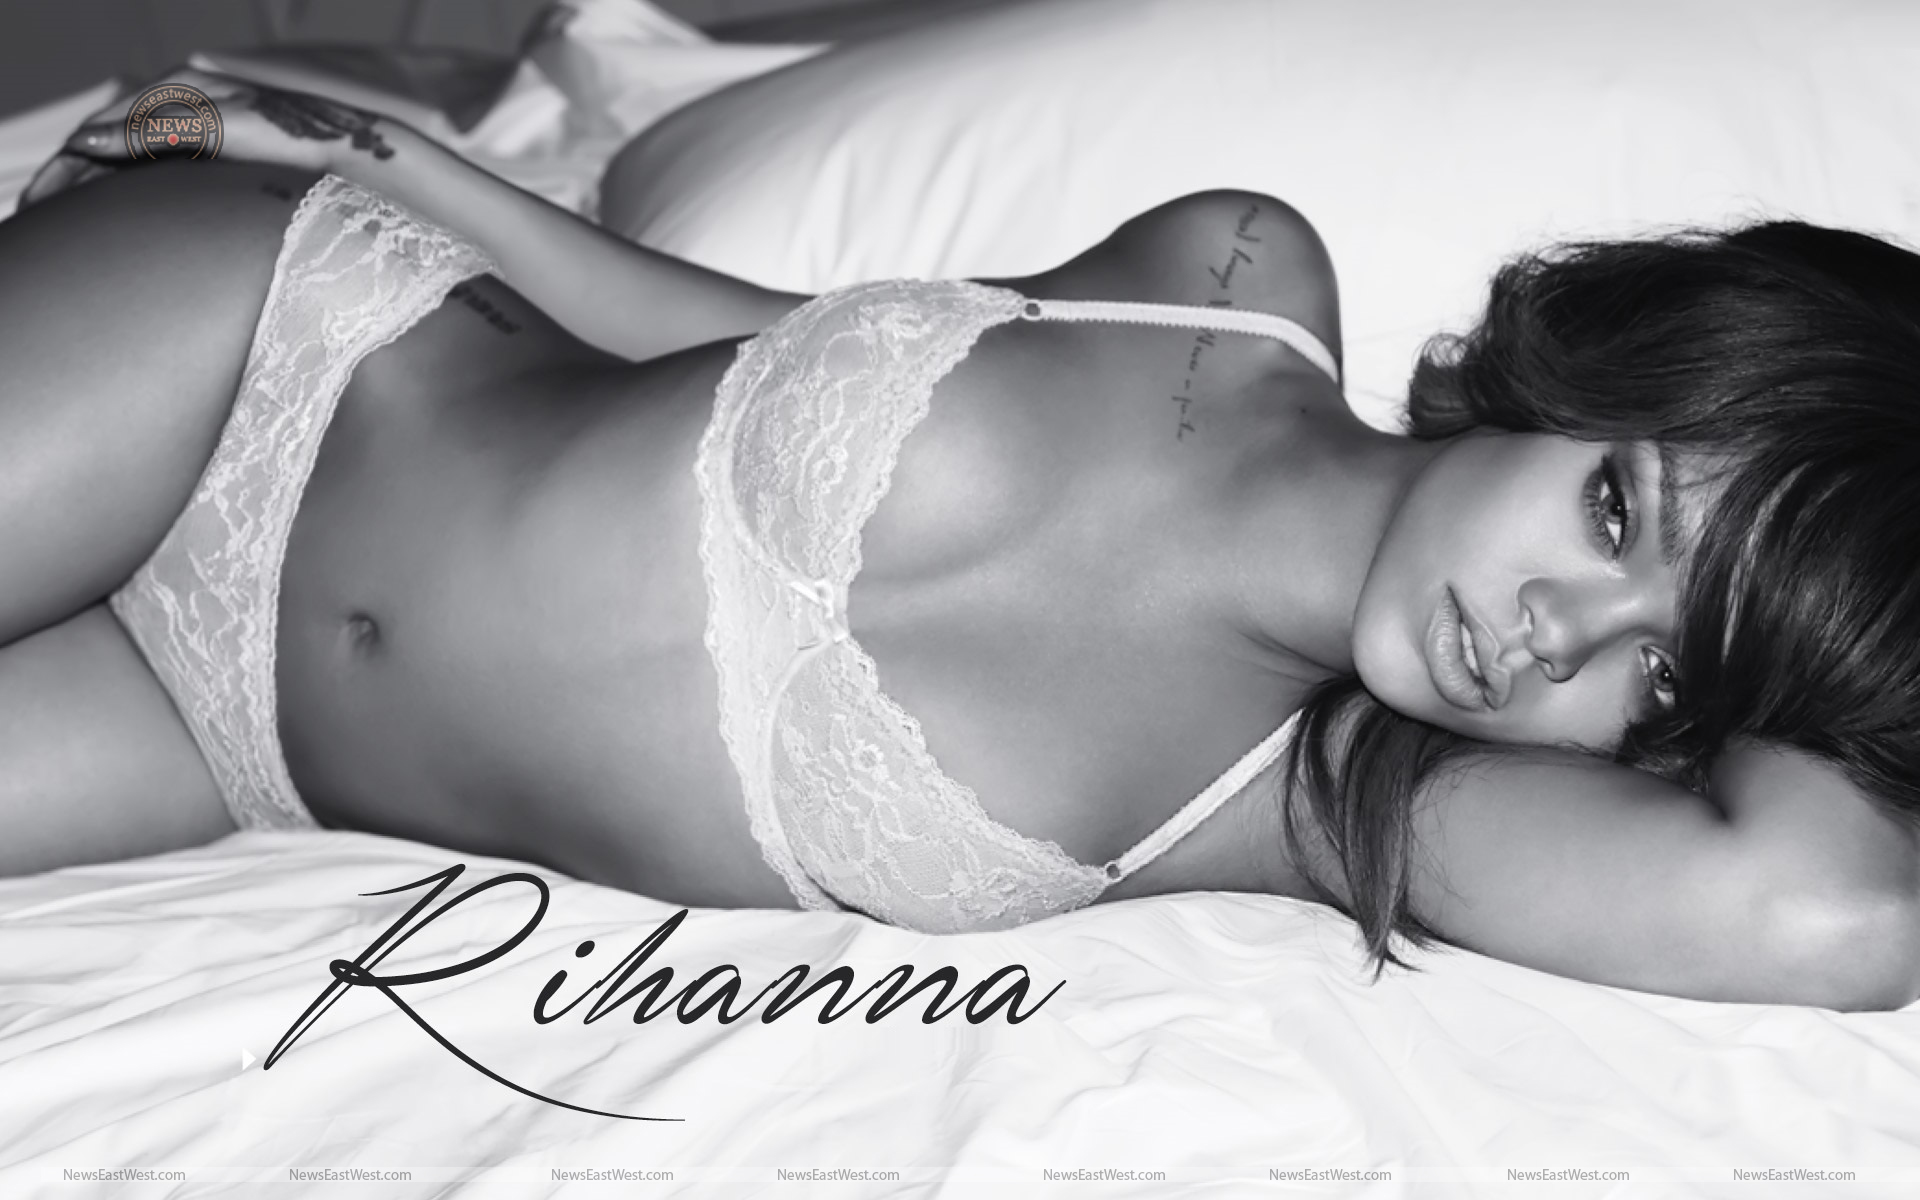 rihanna-sizzling-wallpaper